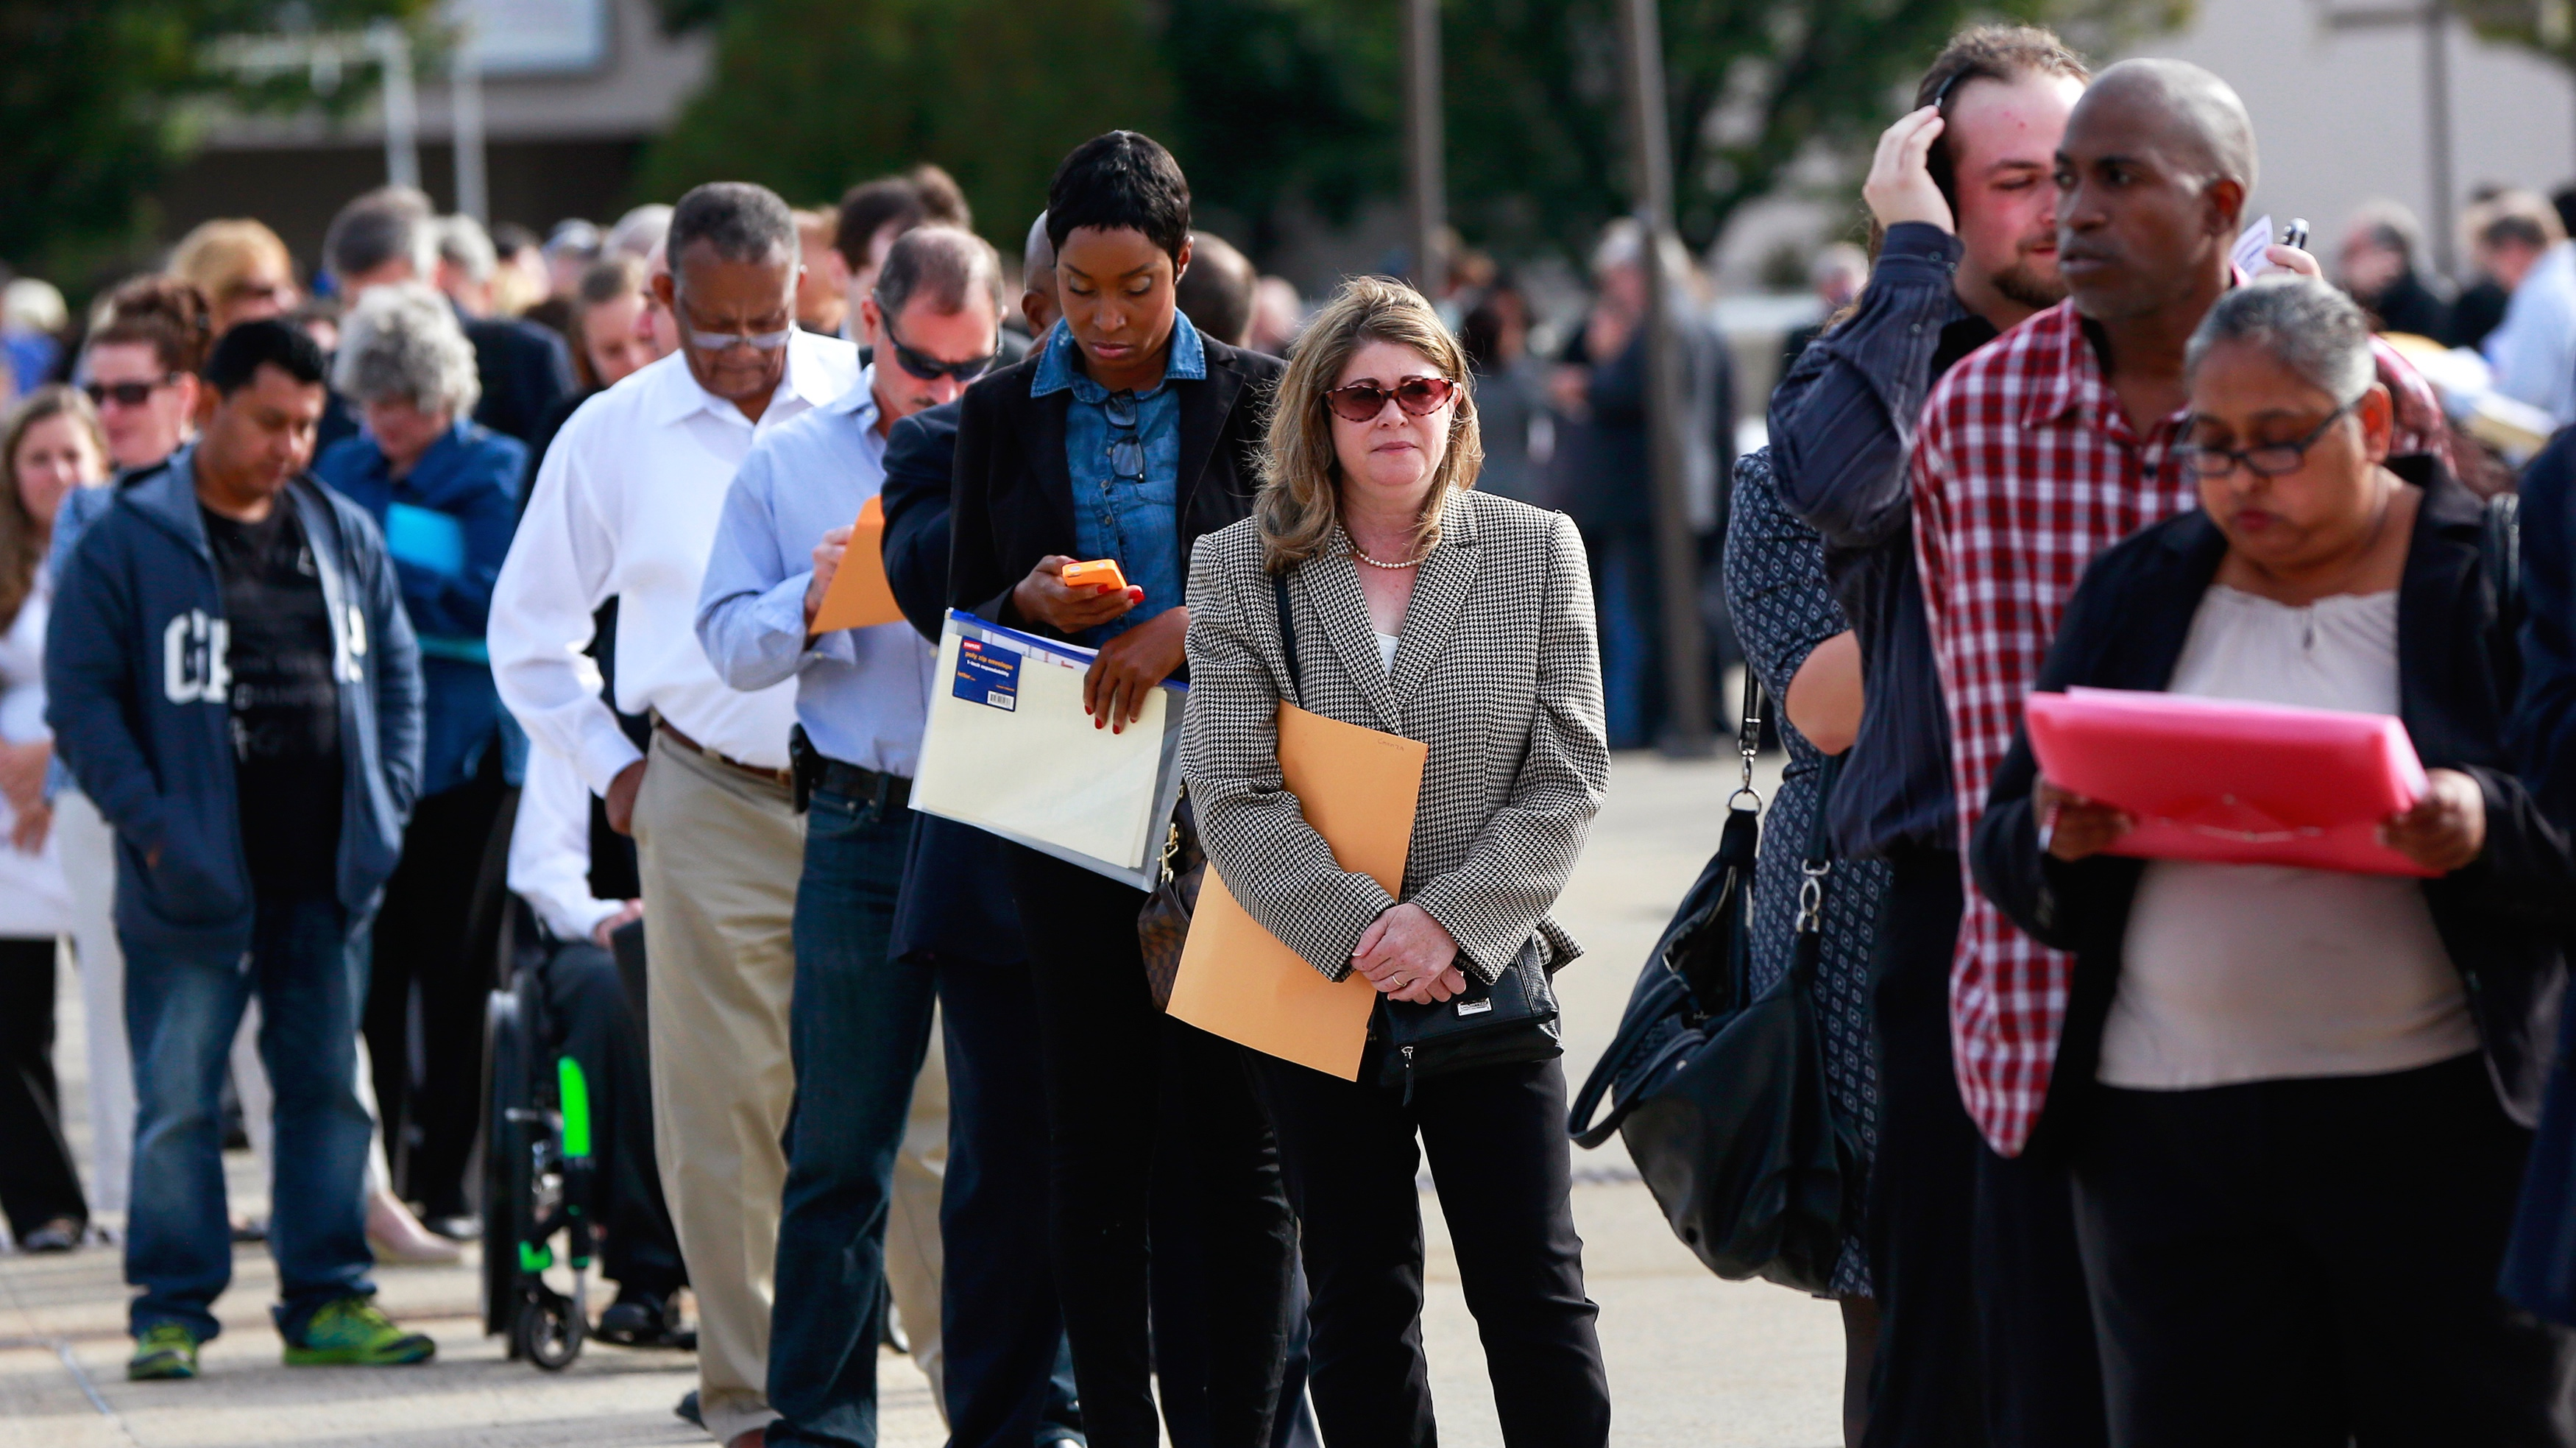 Job seekers stand in line.